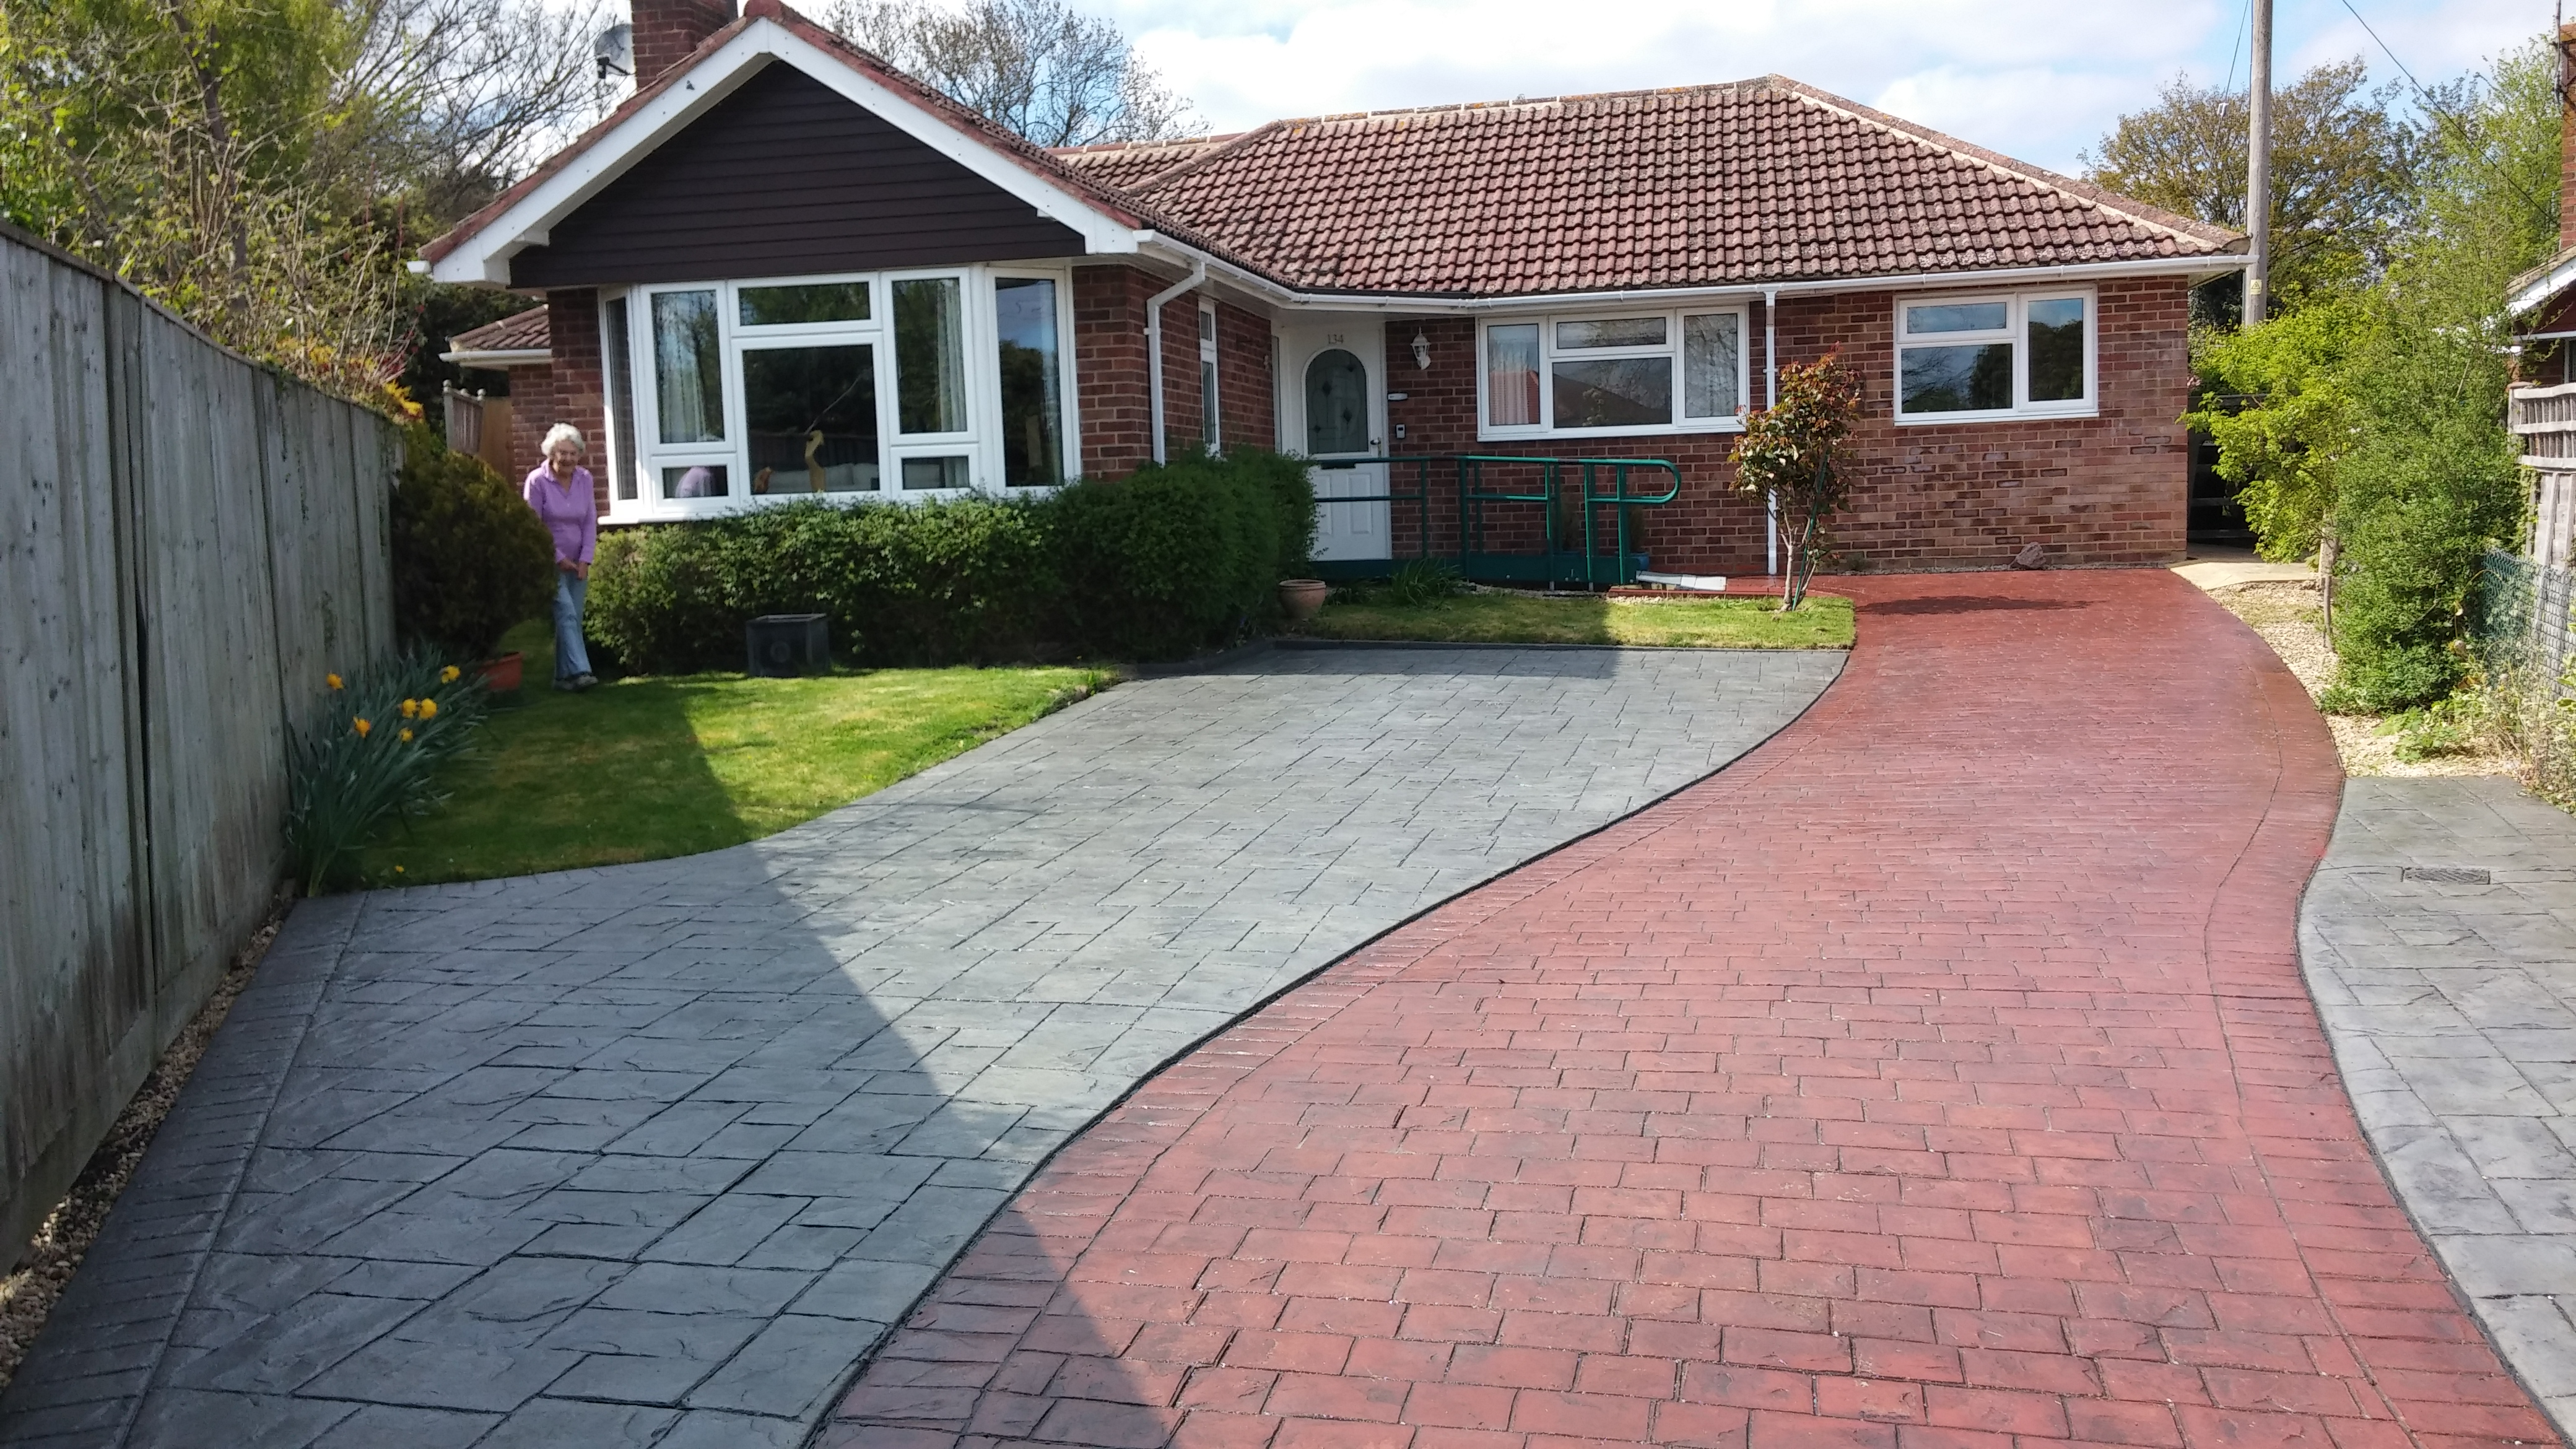 Pattern Imprinted Concrete Repairs and Reseals - Faringdon, Oxfordshire SN7 8DD - 08005 878061 | ShowMeLocal.com